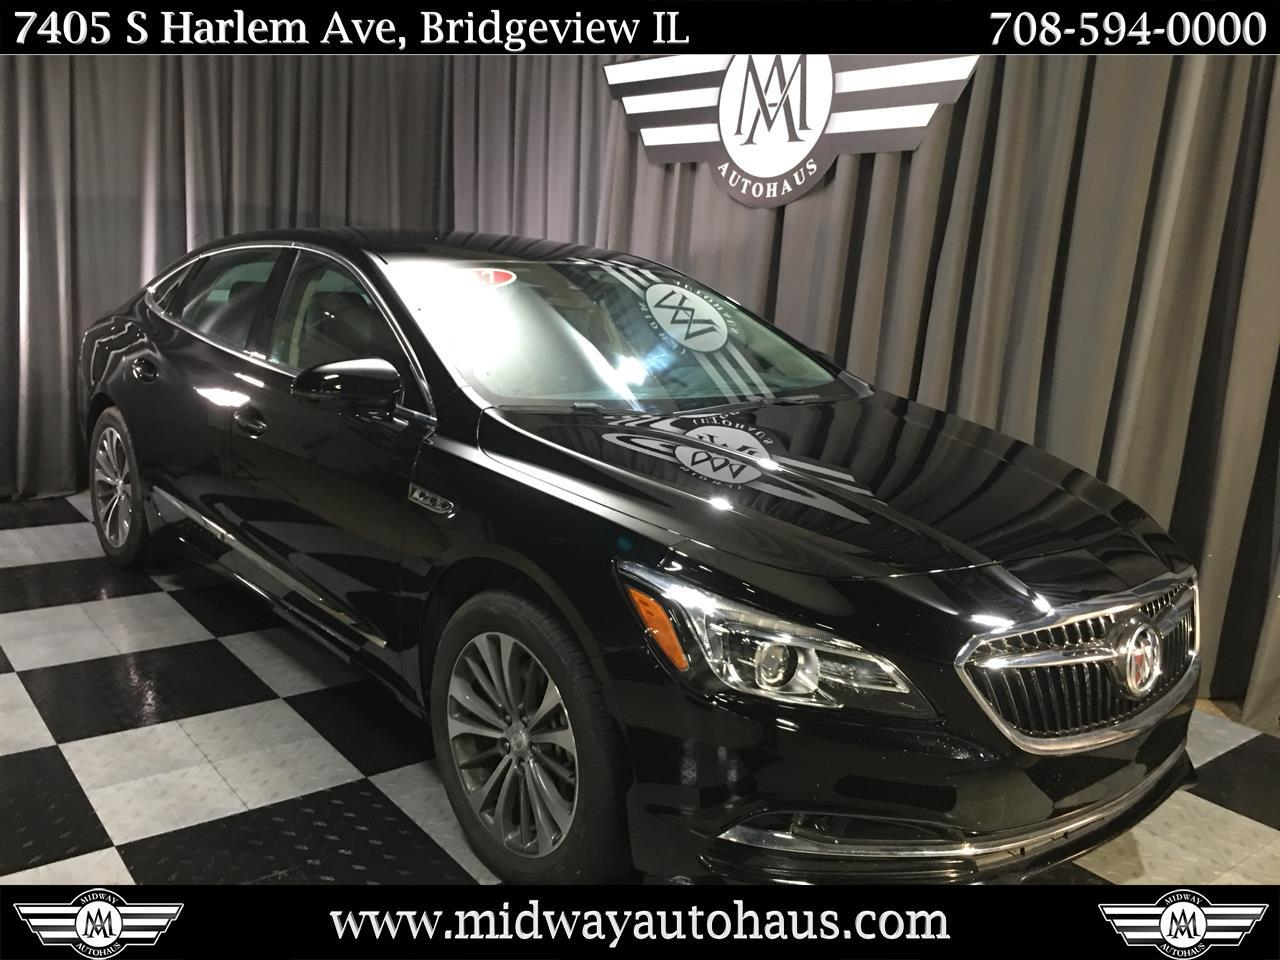 Pre-Owned 2017 Buick LaCrosse 4dr Sdn Premium FWD